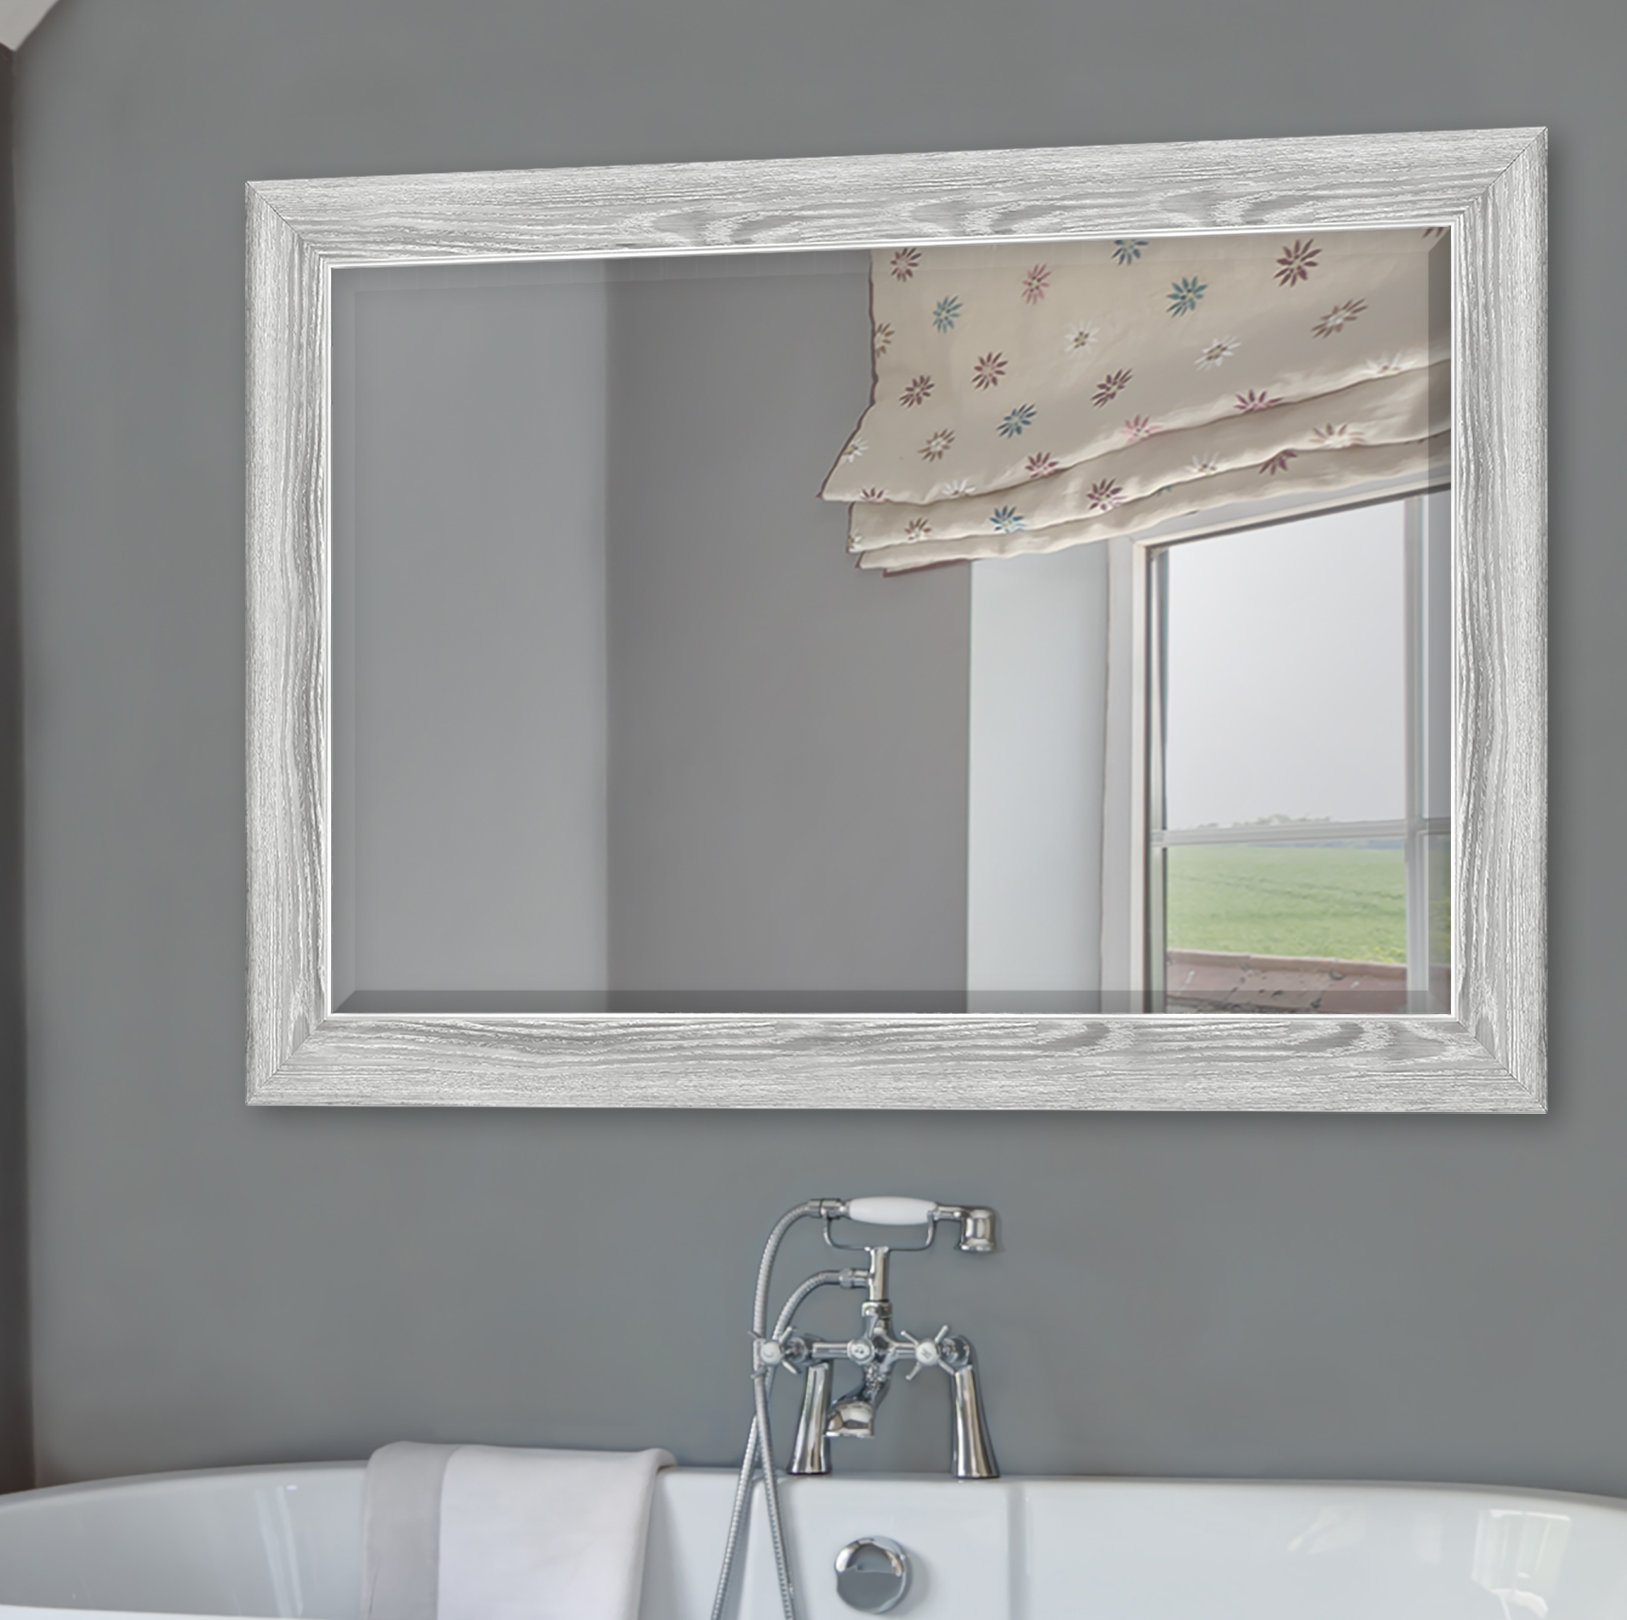 Yeung Curvature Bathroom/vanity Mirror For Landover Rustic Distressed Bathroom/vanity Mirrors (View 8 of 20)